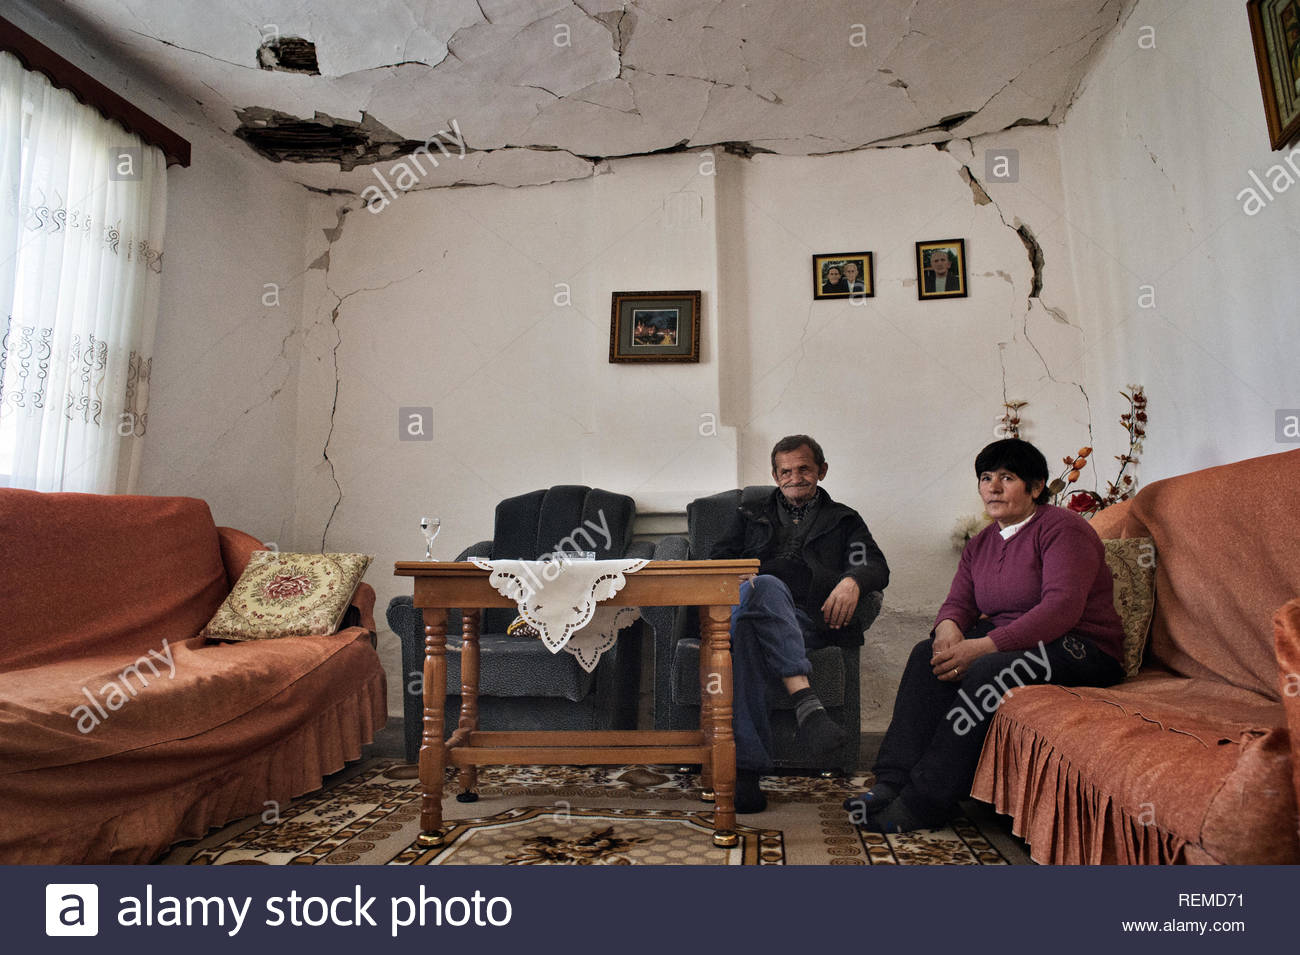 The interior of one of the damaged houses of the village of Patos-Marinza, Fier, Albania. The damages are caused by the practice of oil extraction known as 'fracking', which has caused many earthquakes in an area still inhabited by small farmers and ranchers. - Stock Image